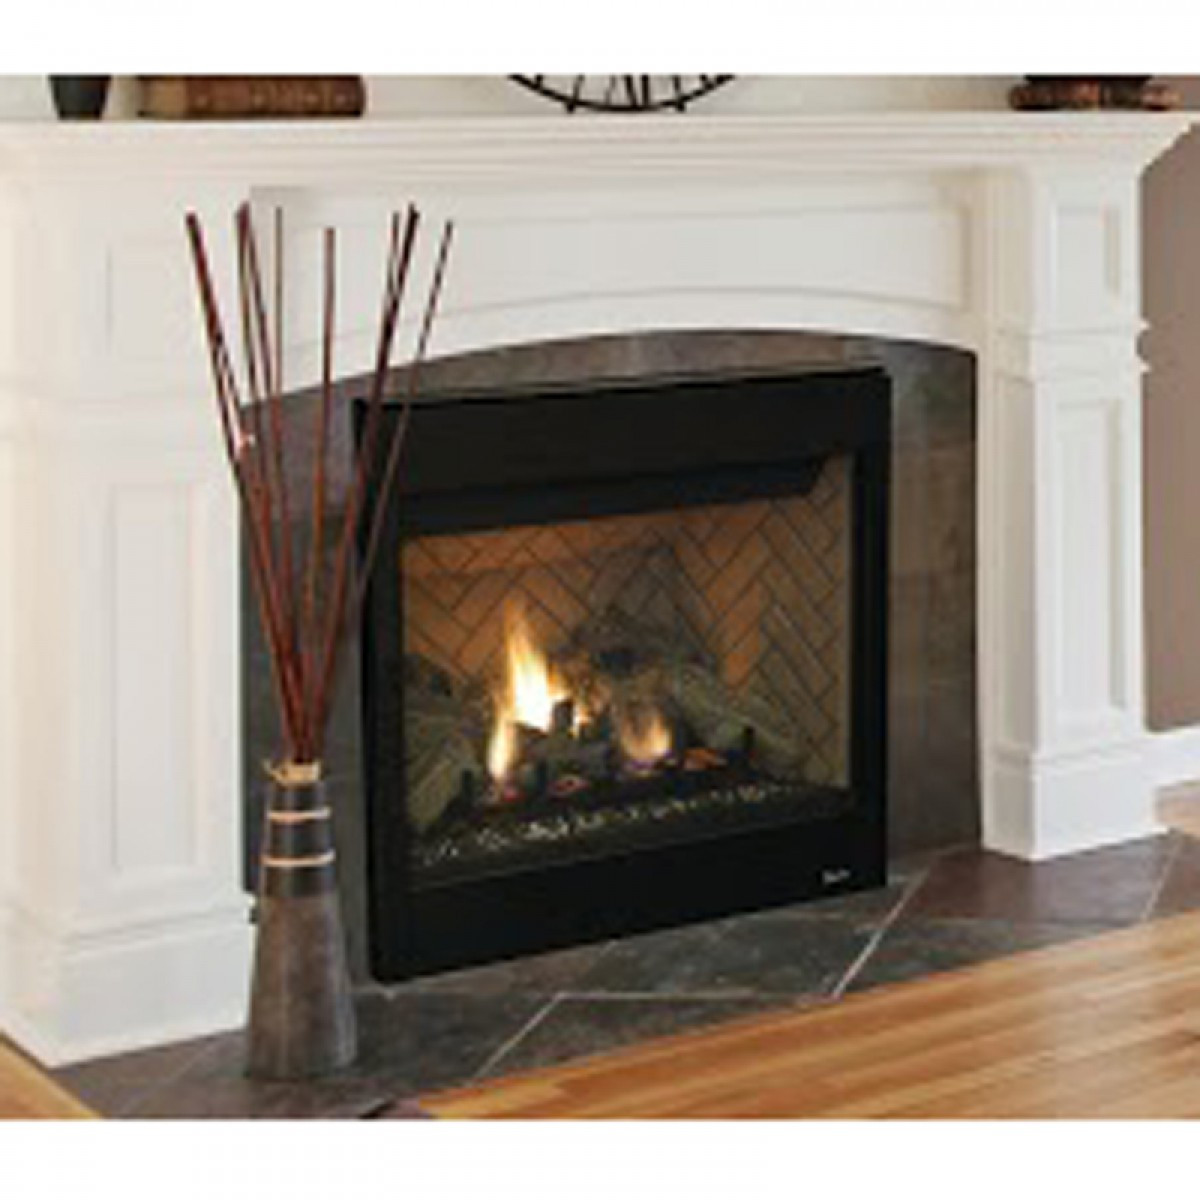 Best ideas about Direct Vent Gas Fireplace . Save or Pin IHP Superior DRT6300 Direct Vent Gas Fireplace Now.